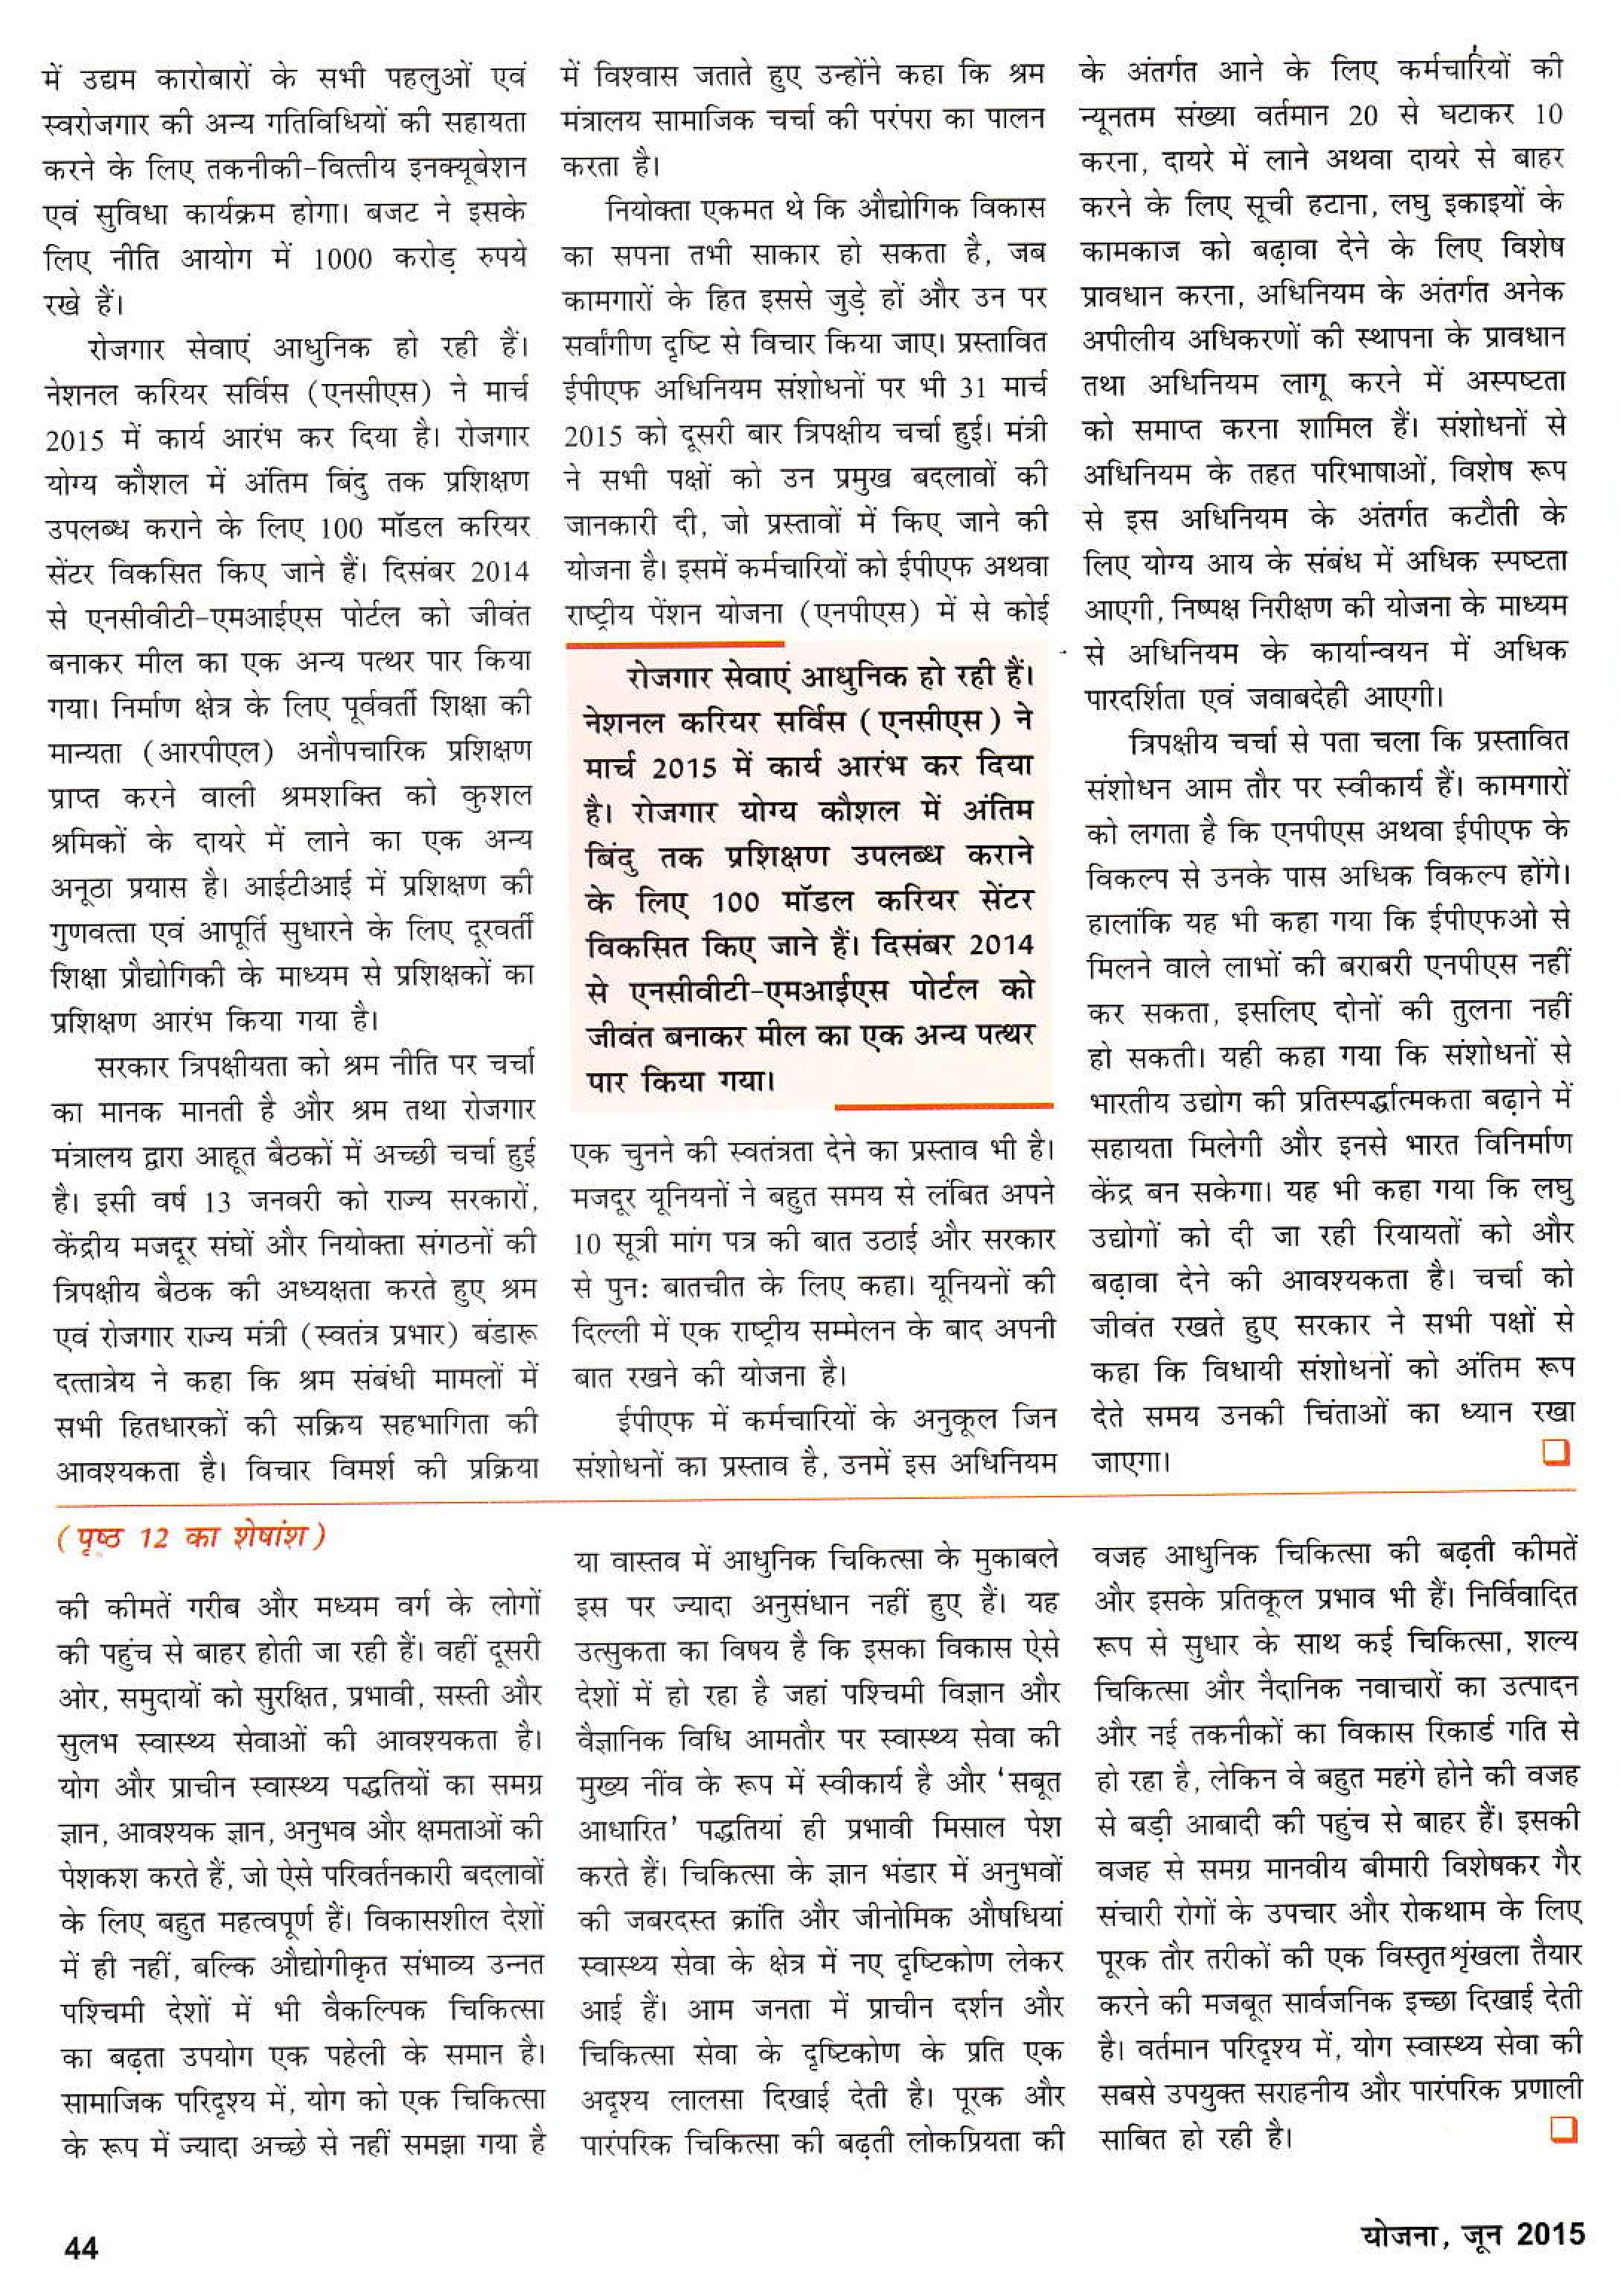 IMG_0009-page-004